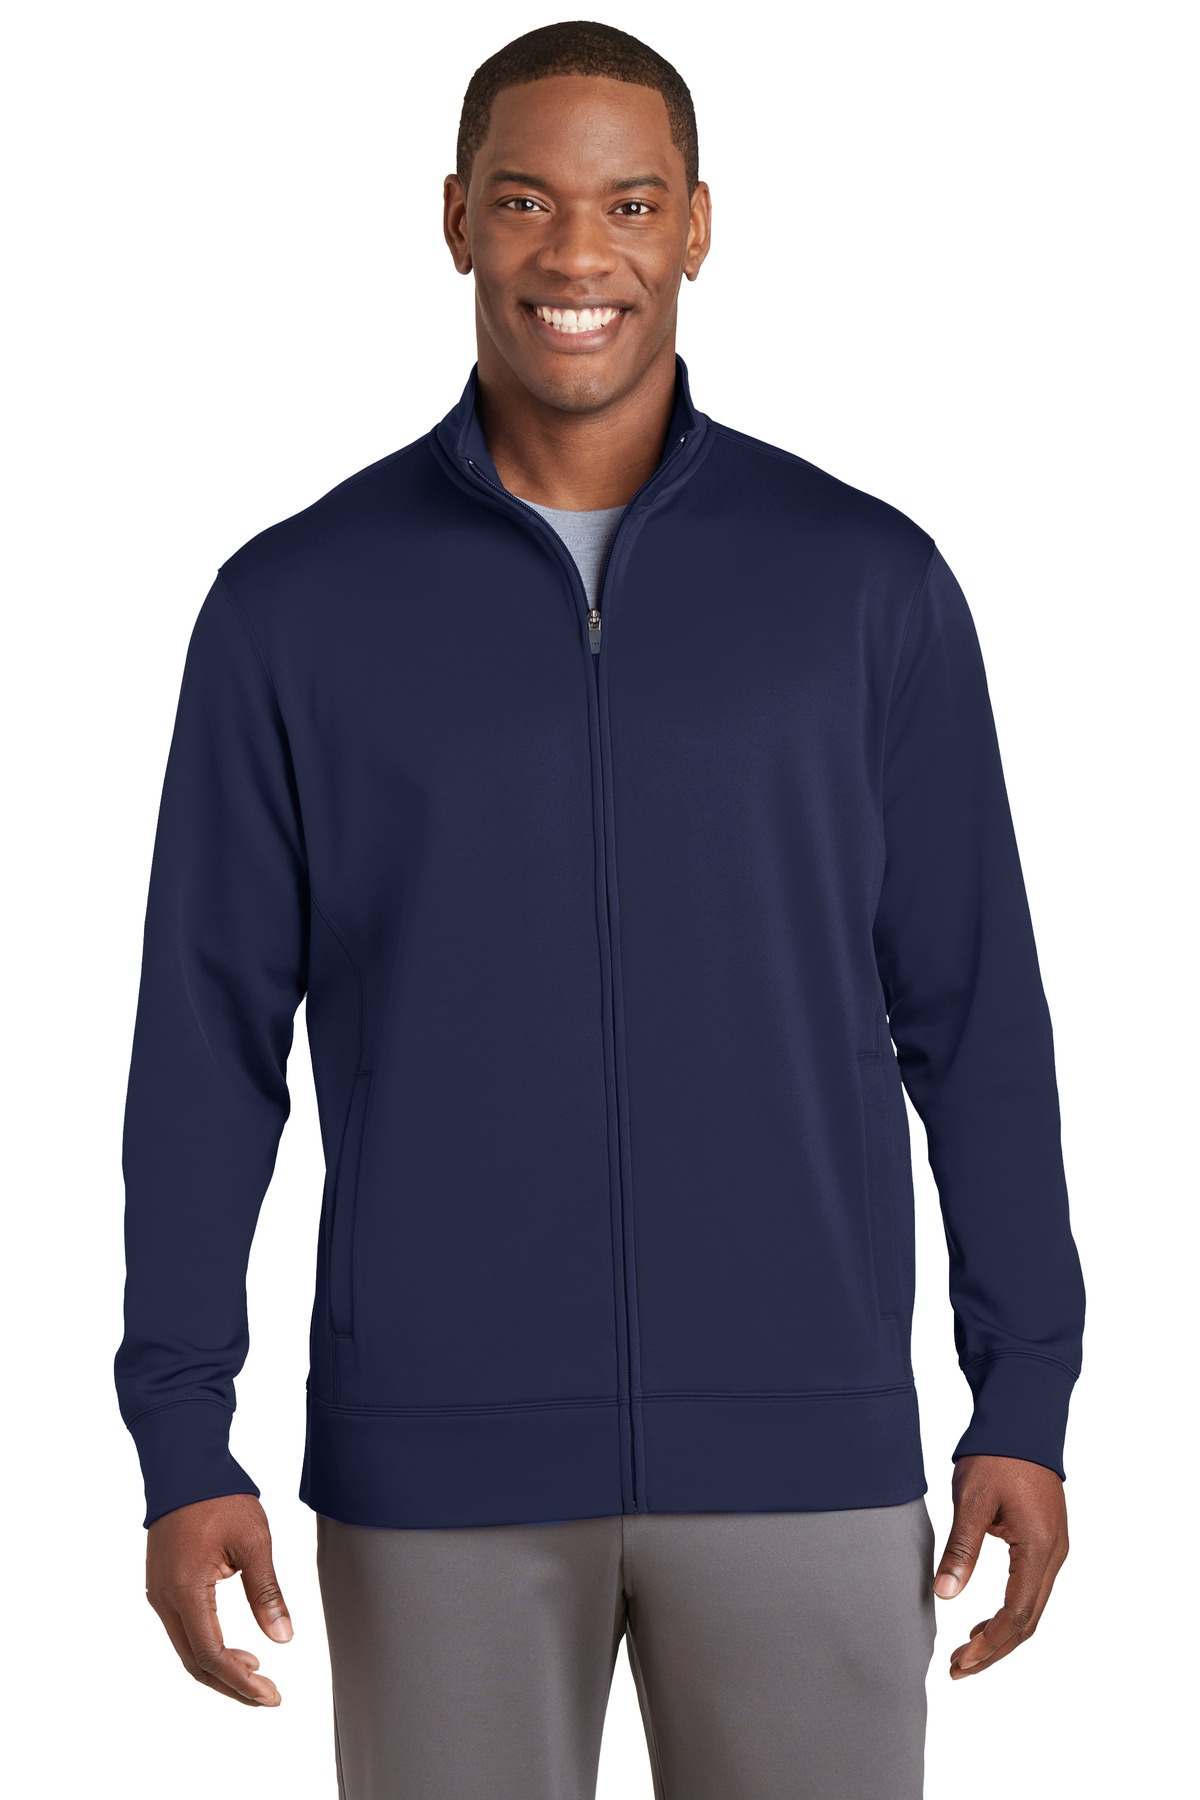 Sport-Tek ®  Sport-Wick ®  Fleece Full-Zip Jacket.  ST241 - Navy